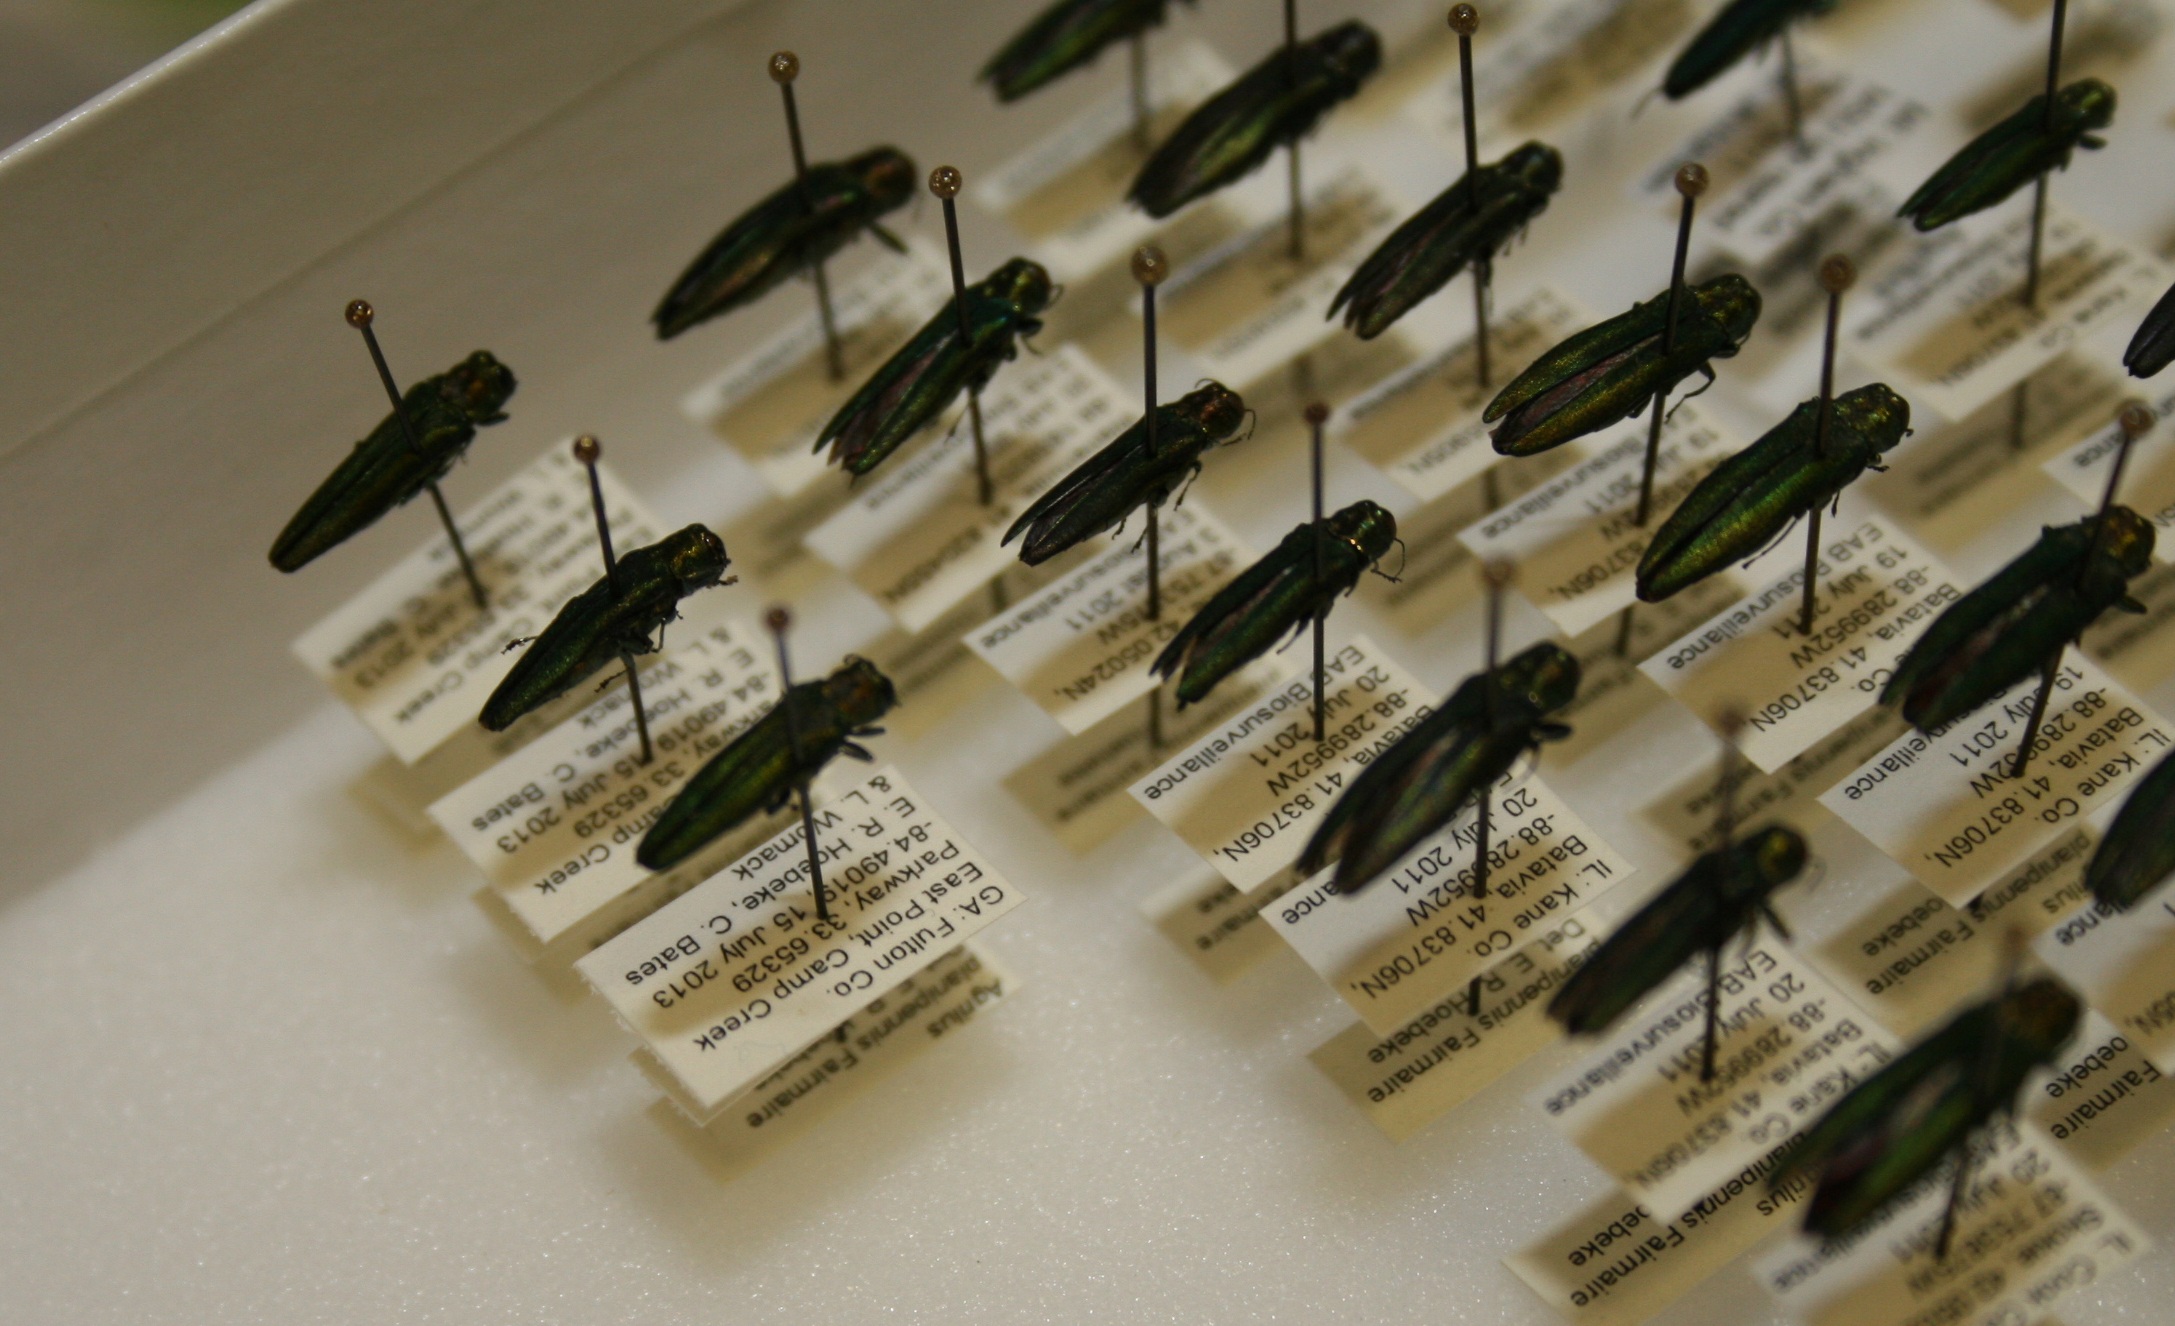 Close up of emerald ash borers in the Georgia Natural History Museum.